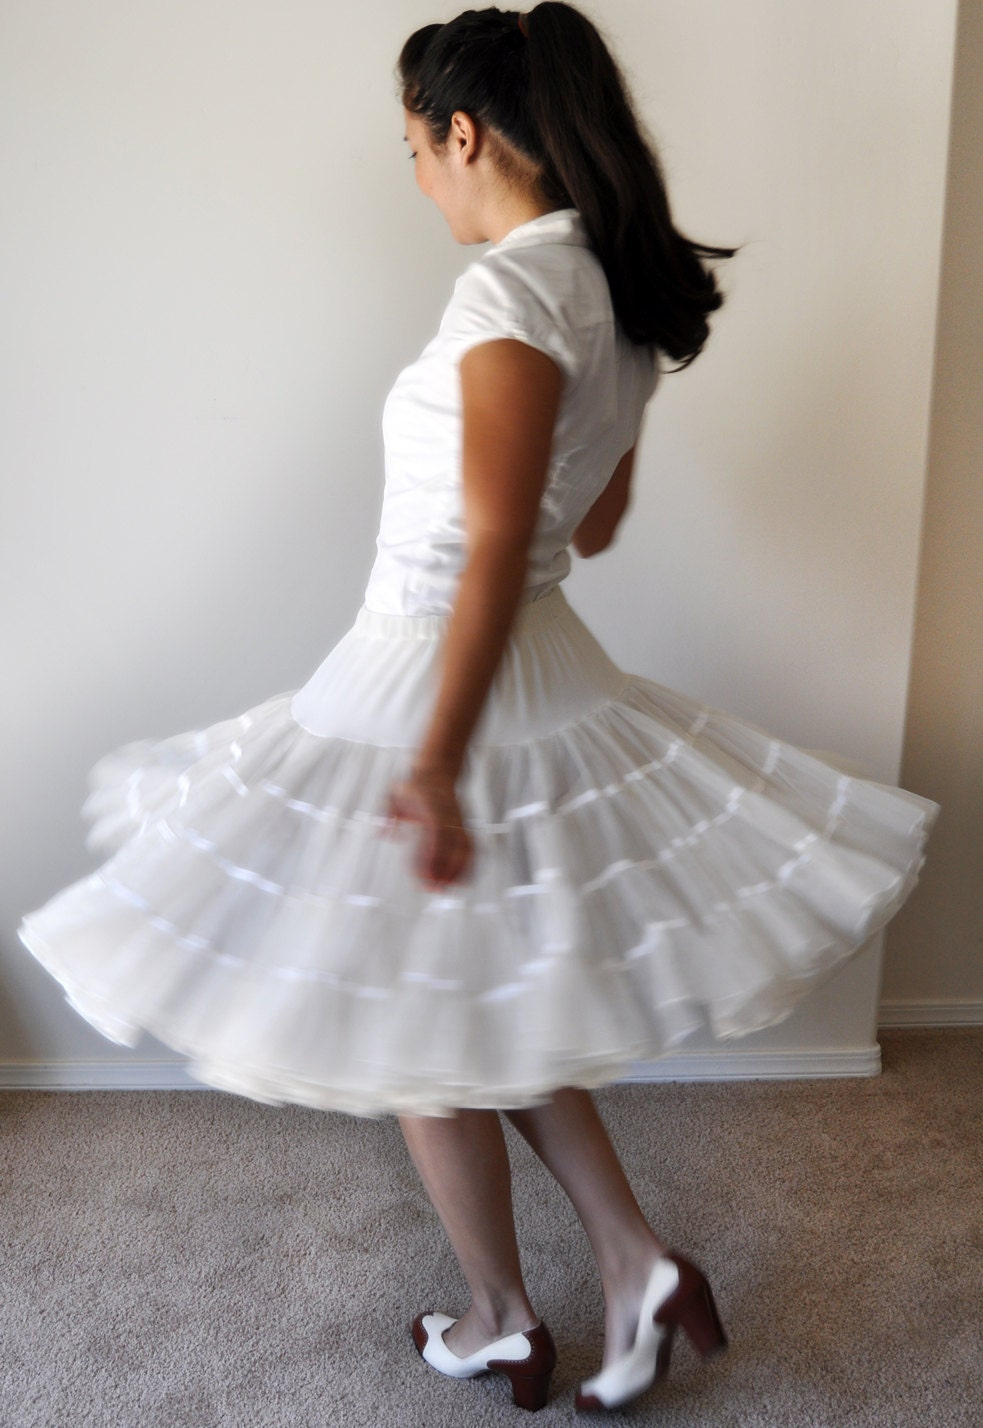 CHRISTMAS SALE Vintage petticoat skirt Cream by  : ilfullxfull344116761 from www.etsy.com size 983 x 1428 jpeg 201kB